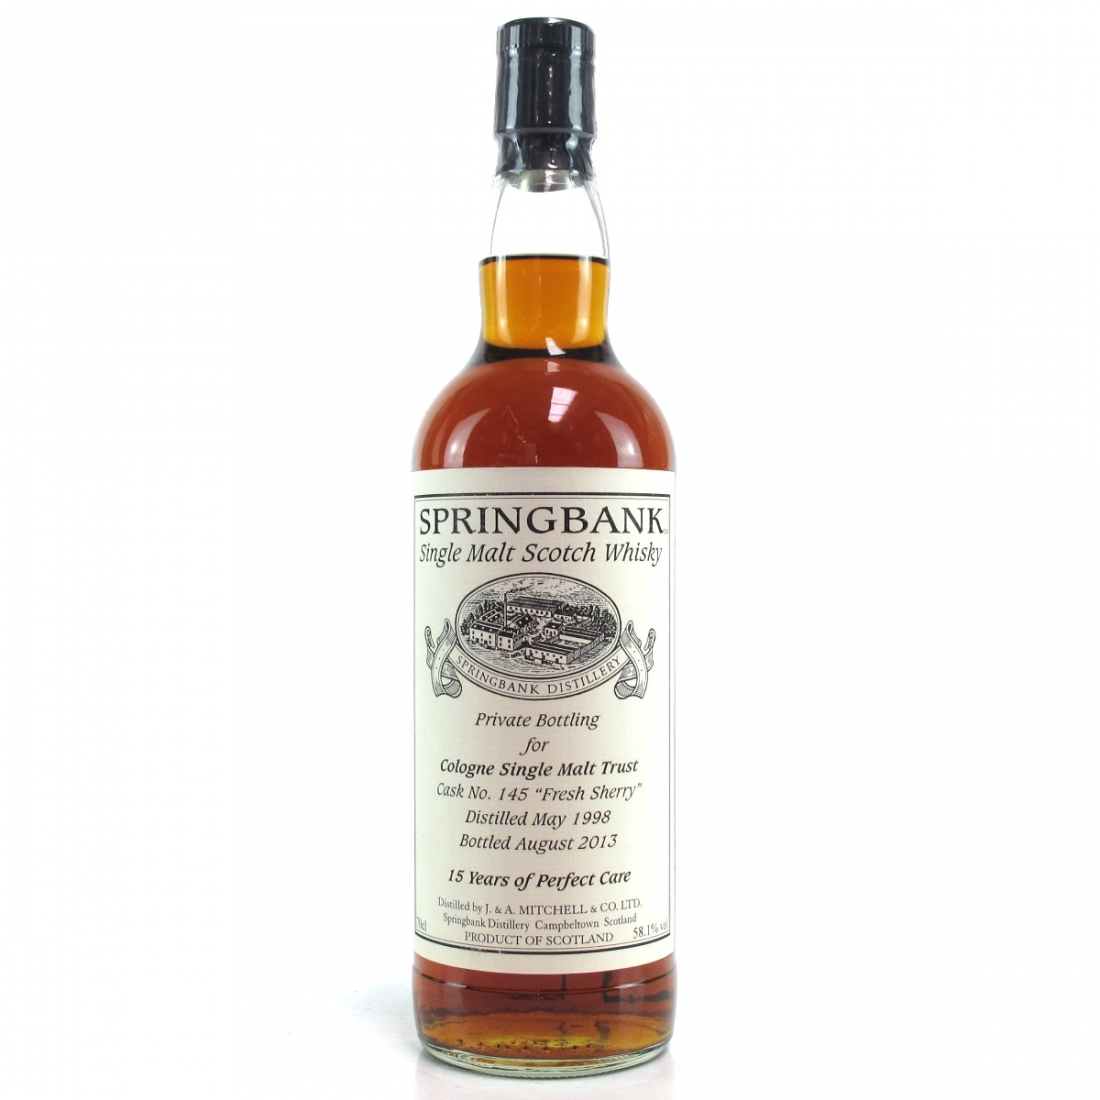 Springbank 1998 Private Cask 15 Year Old / Cologne Single